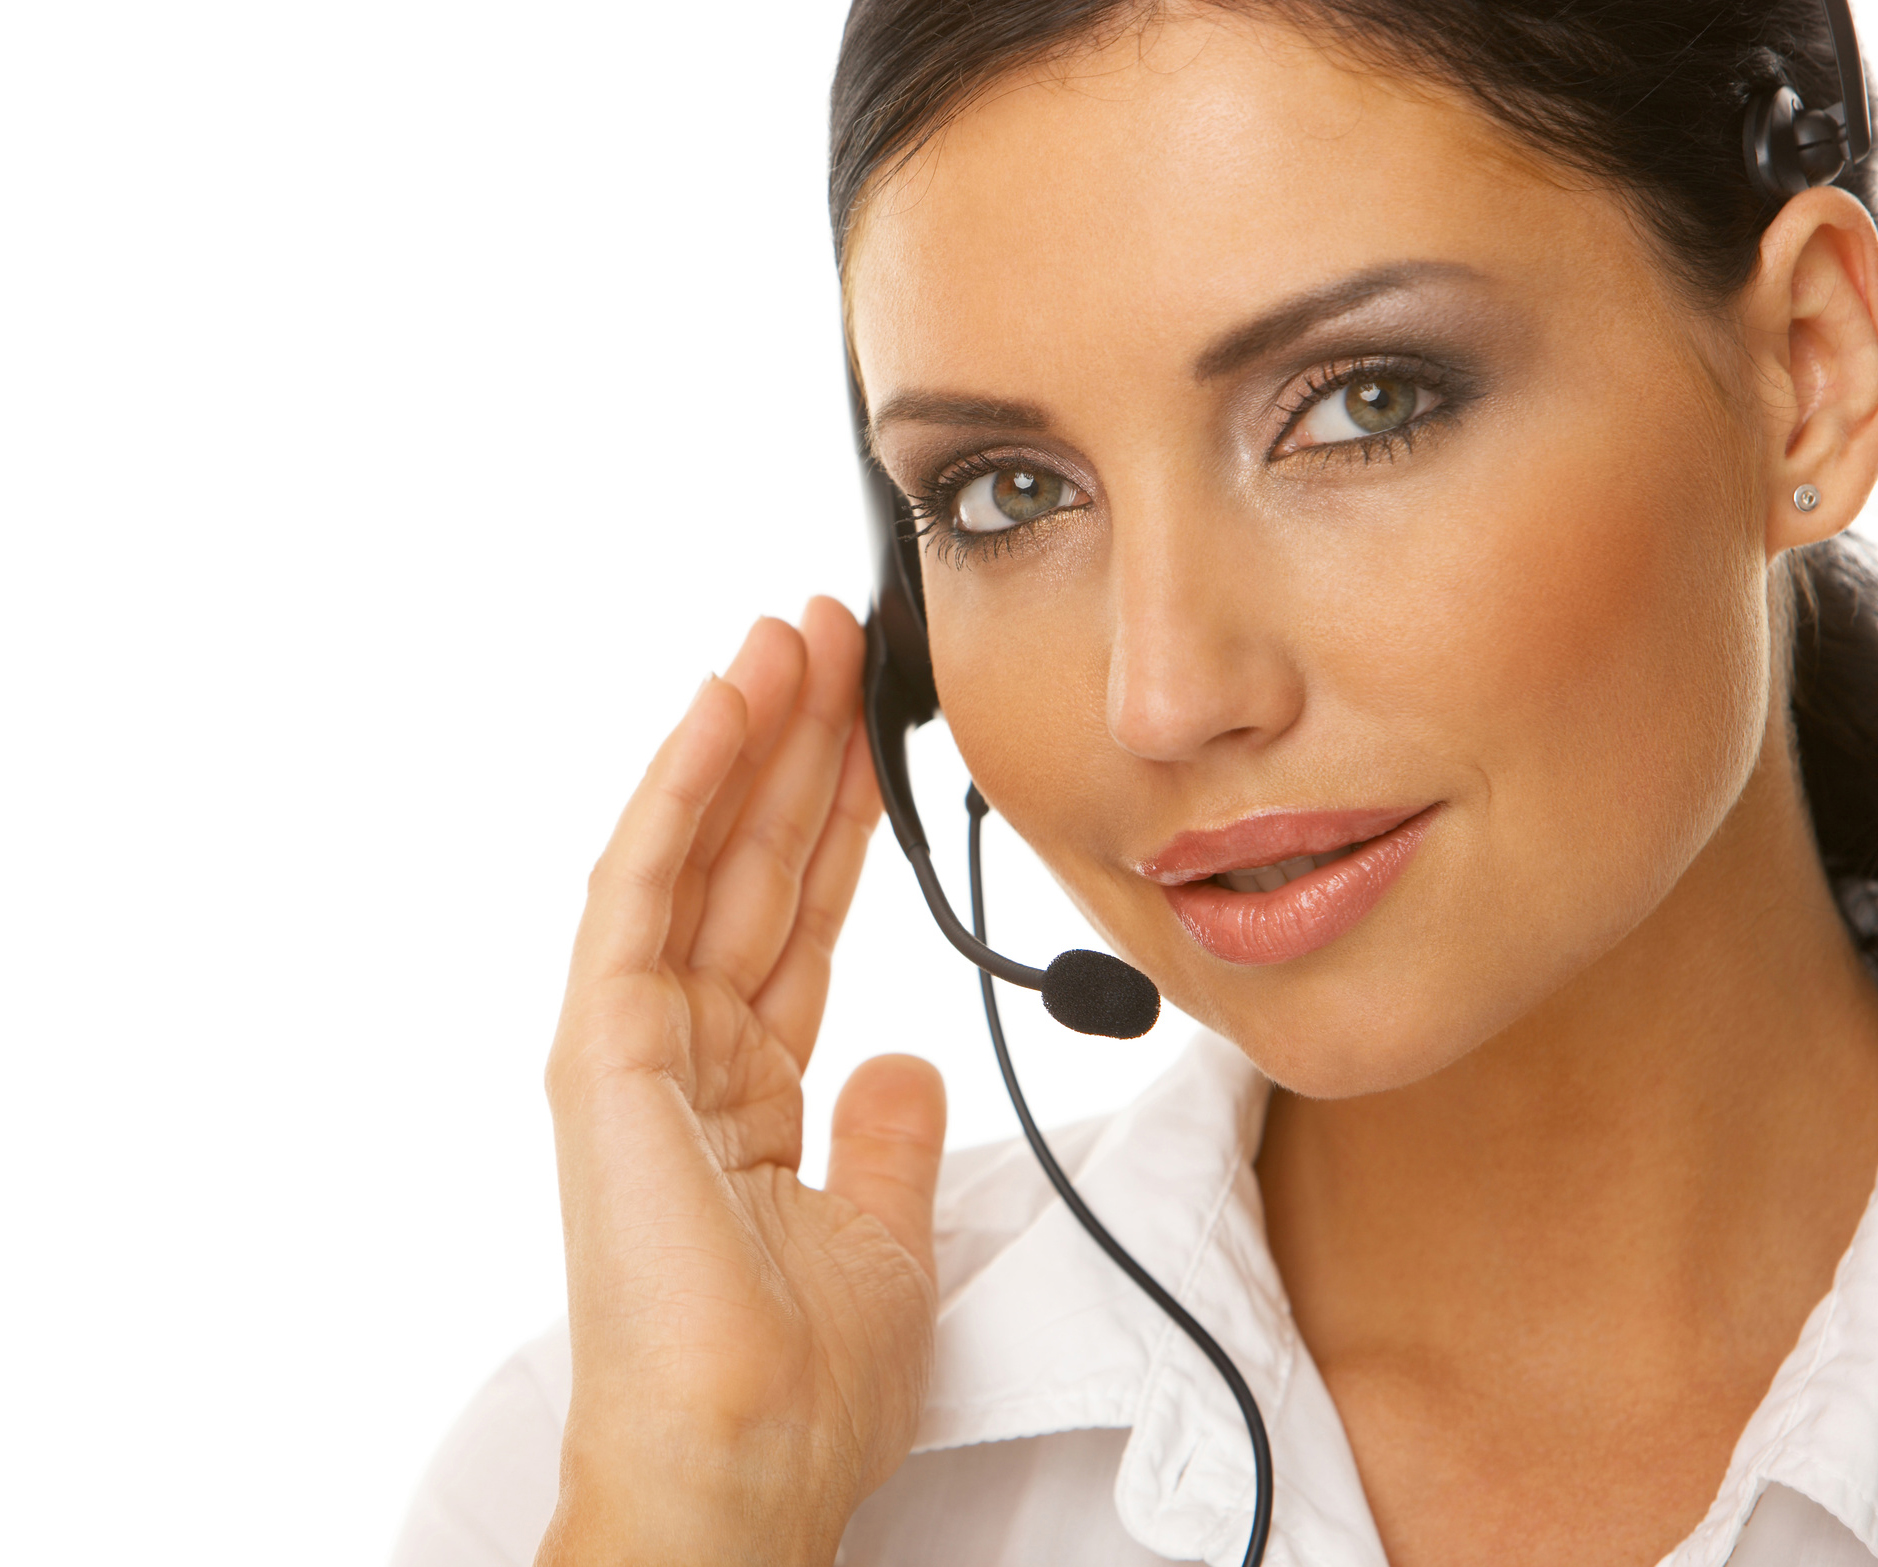 call centre Typically, abandon rates are linked to how fast call centre agents answer calls  the faster a call is answered, the lower the abandon rate high abandon rates.